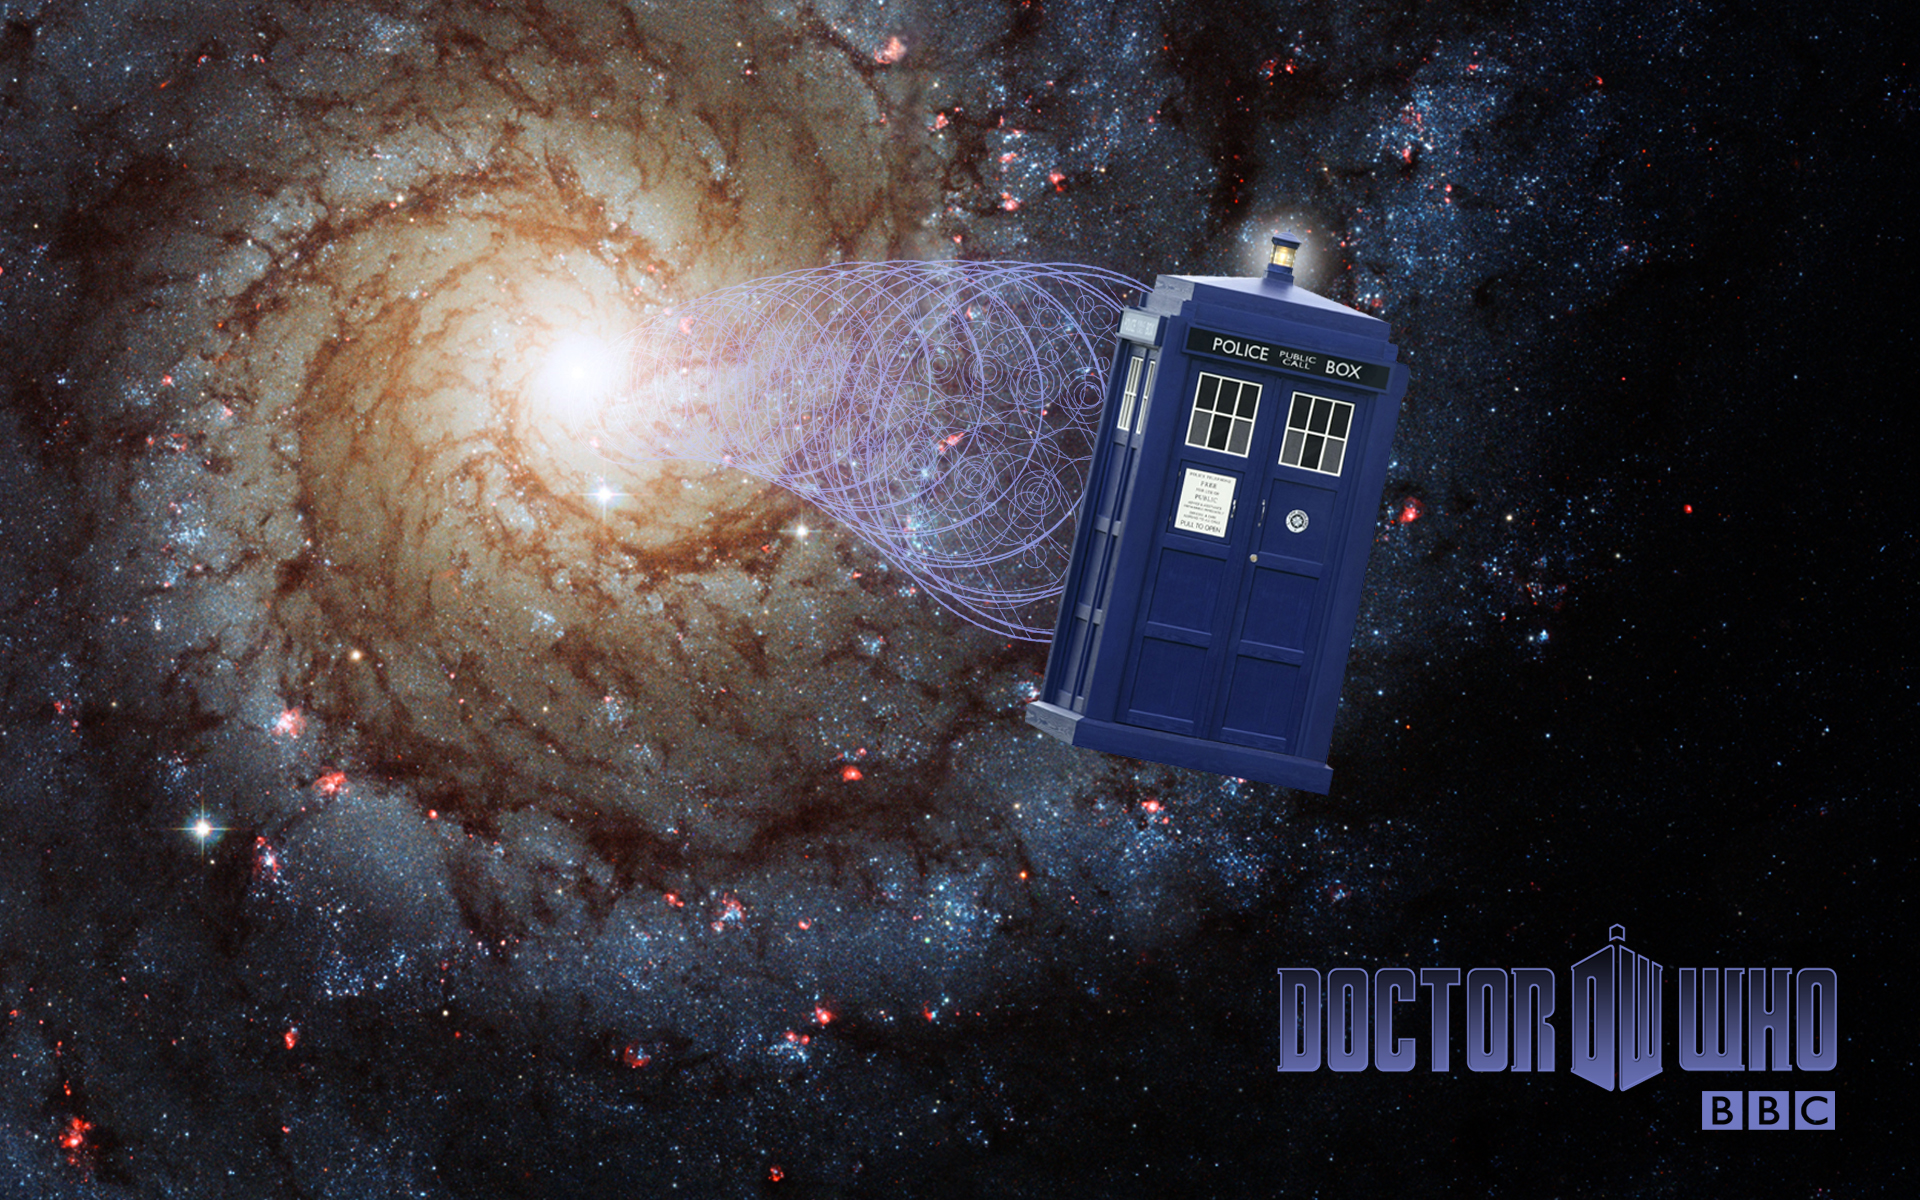 doctor who hd wallpapers pictures images. Black Bedroom Furniture Sets. Home Design Ideas